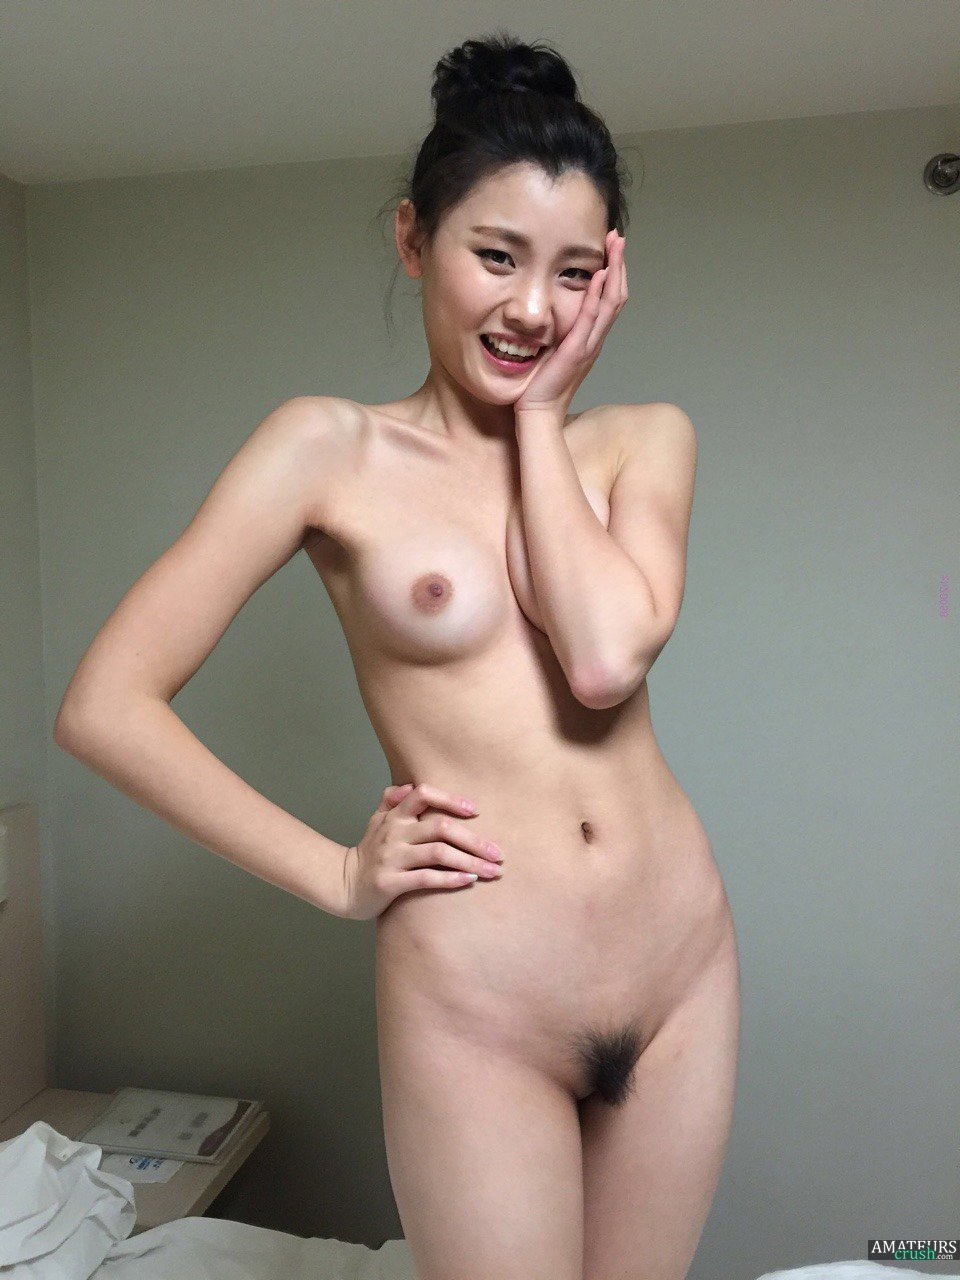 Amature shemales jerking uncut cock pictures